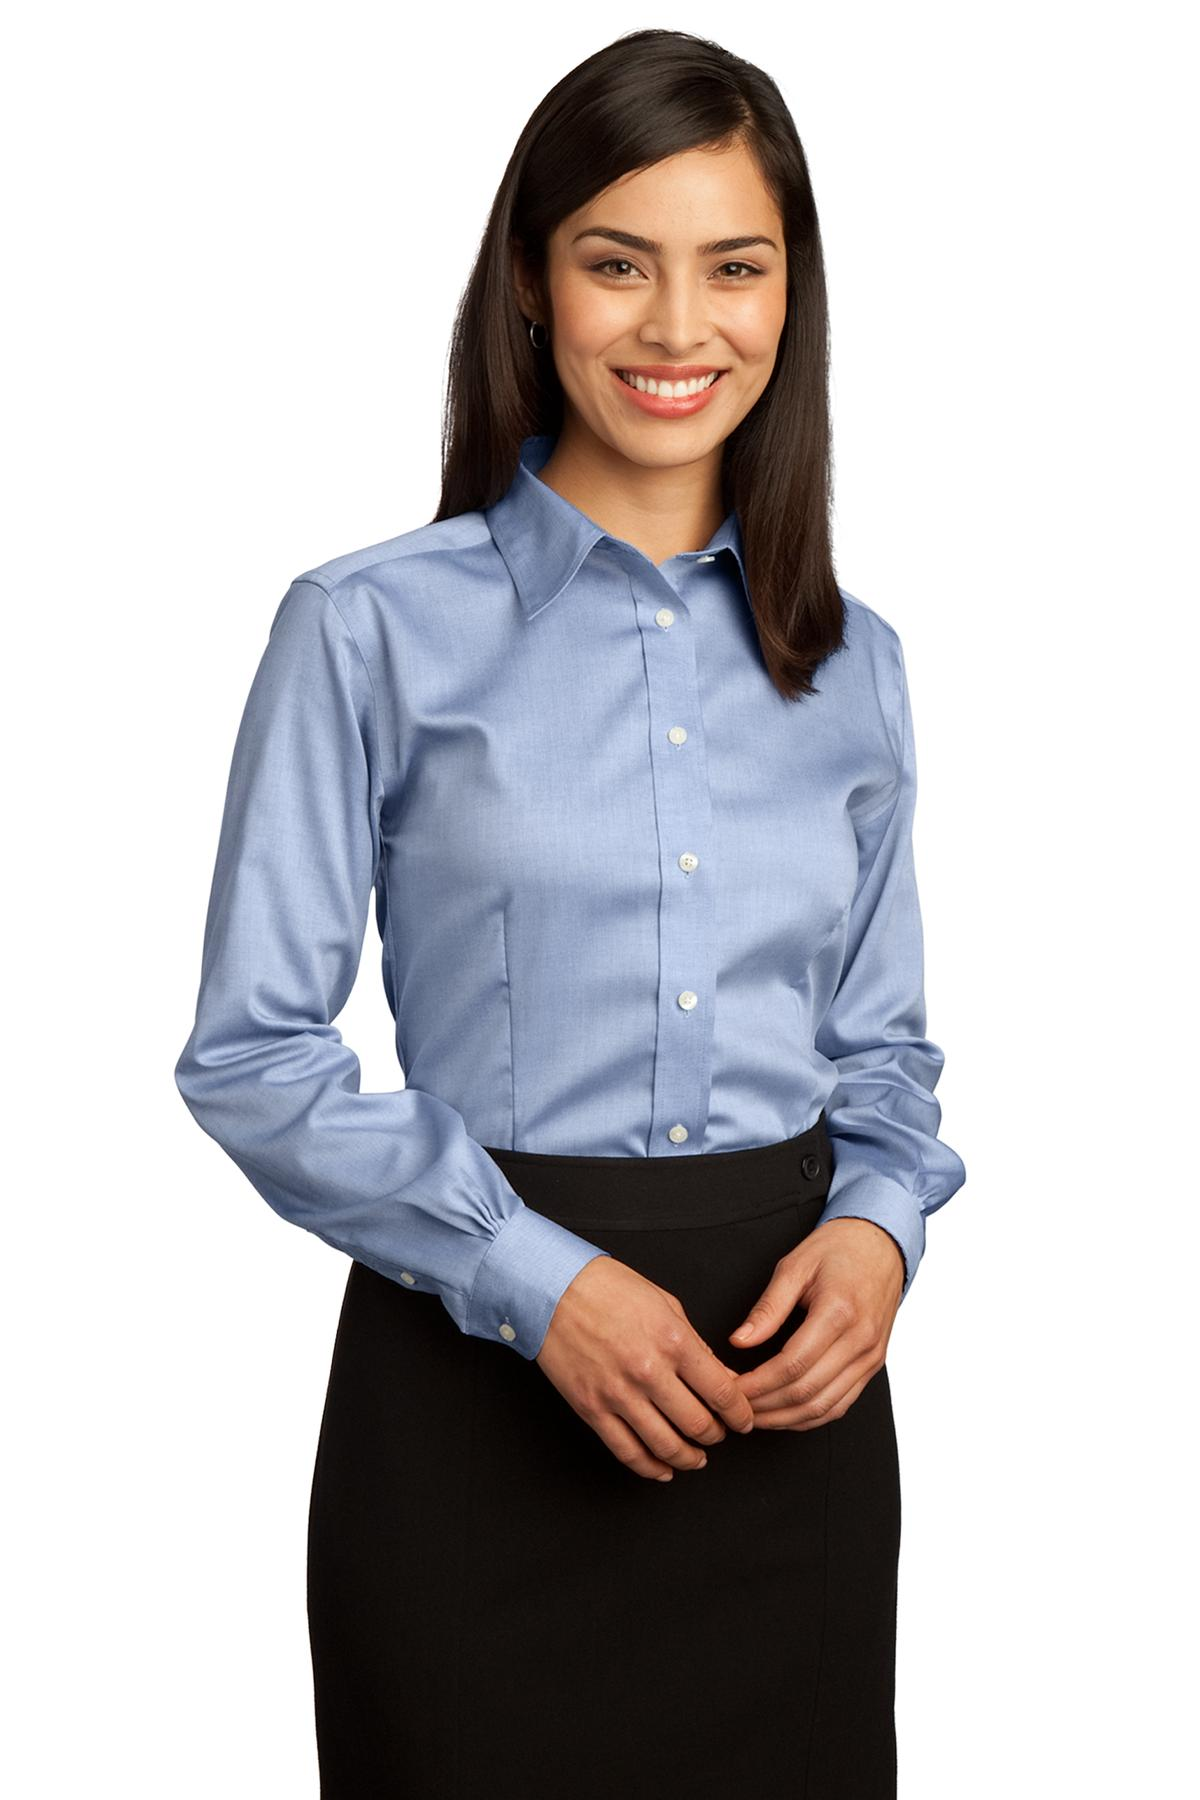 db10022dc Red House ® - Ladies Non-Iron Pinpoint Oxford Shirt. RH25 | Matrix  Promotional Marketing